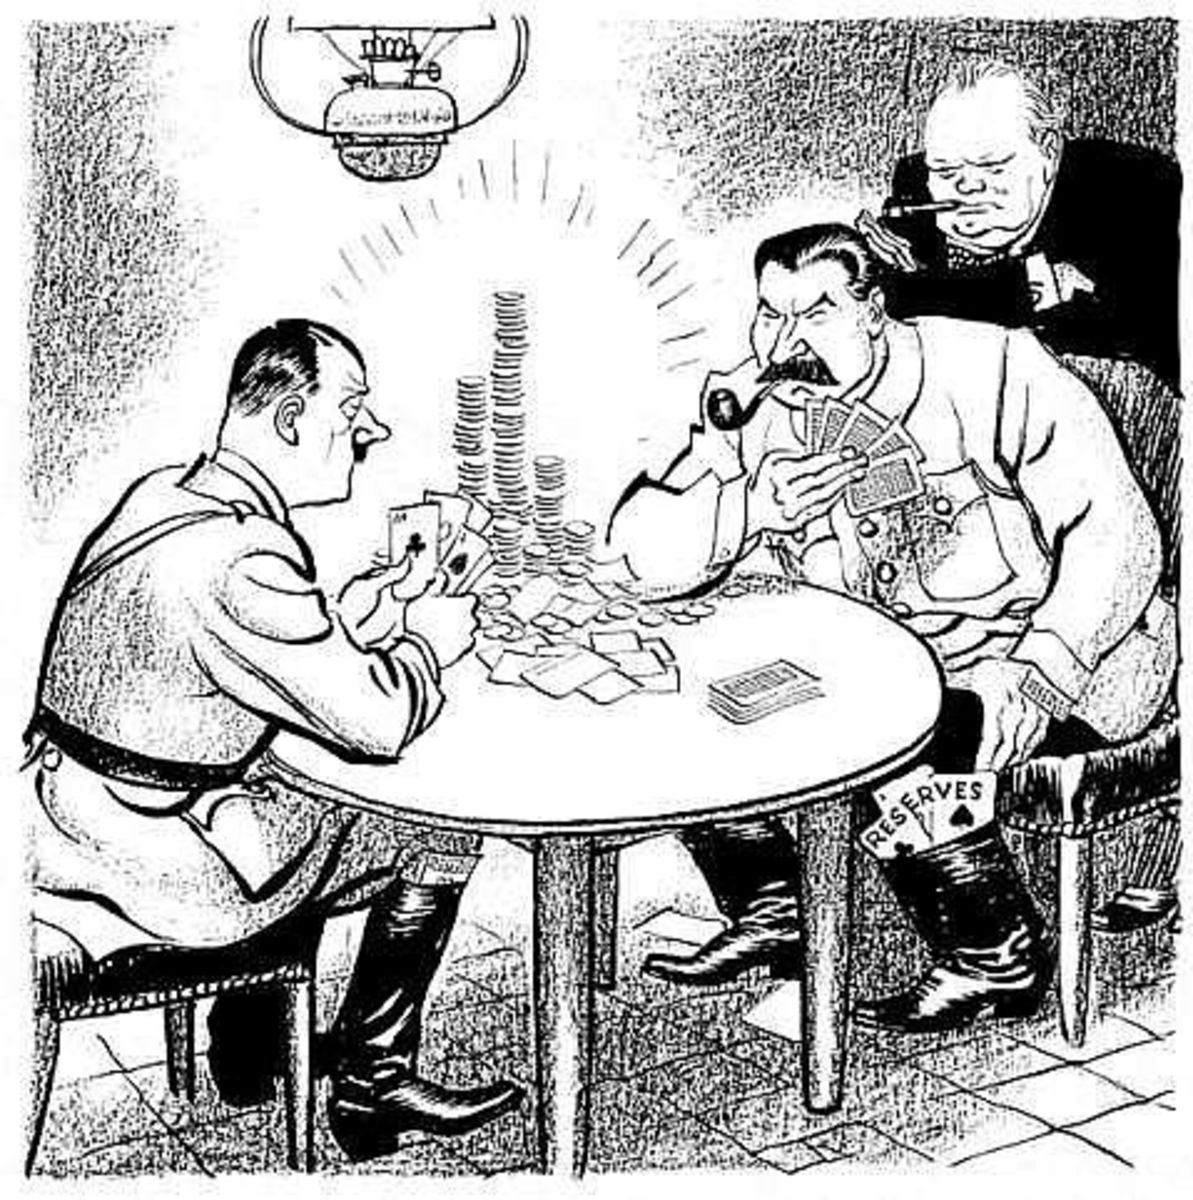 Hitler and Stalin Two Fanatical and Ideological Opposed Leaders and Their Psychology